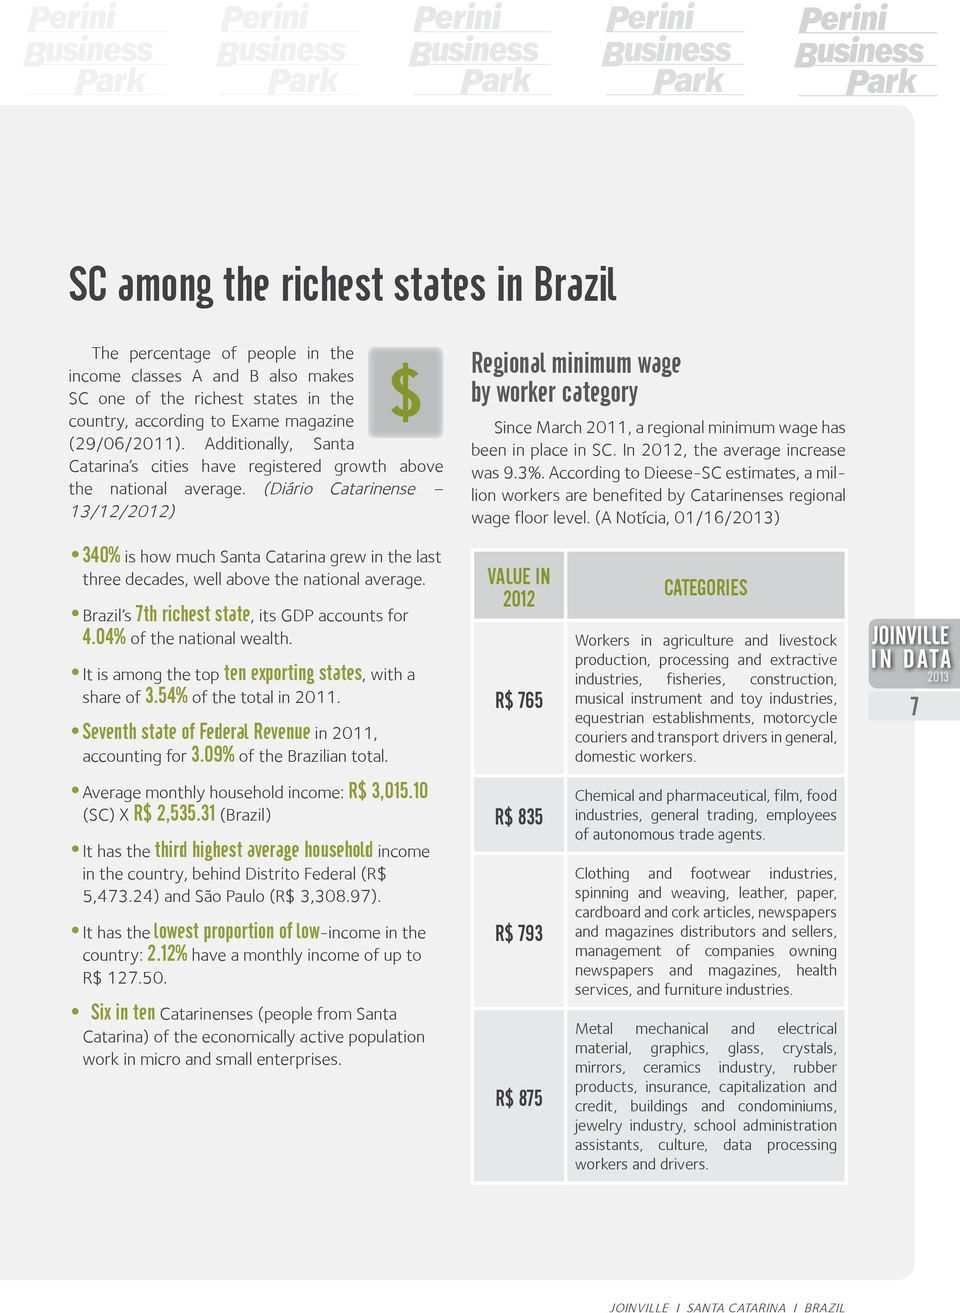 (Diário Catarinense 13/12/2012) Regional minimum wage by worker category Since March 2011, a regional minimum wage has been in place in SC. In 2012, the average increase was 9.3%.